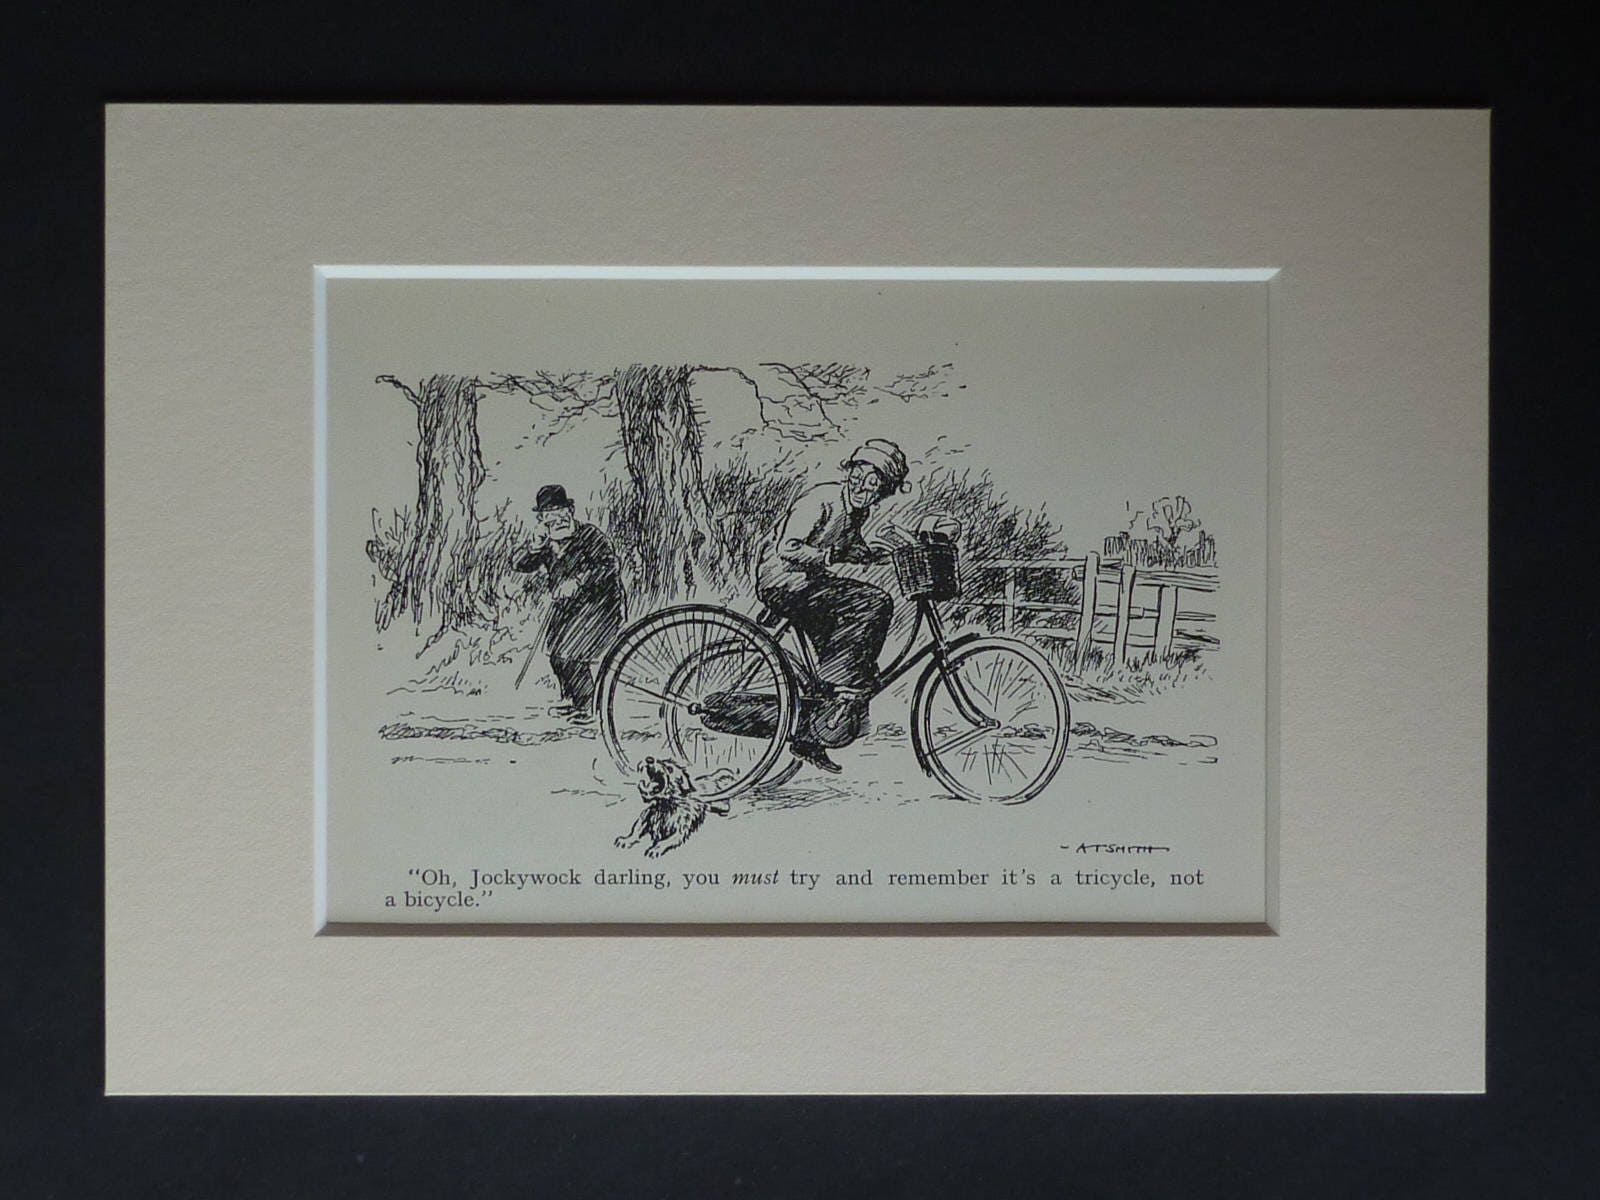 1930s Antique Scottie Dog Print Available Framed Tricycle Art Scottish Terrier Gift for Animal Lover Old Vet Picture Veterinary Cartoon